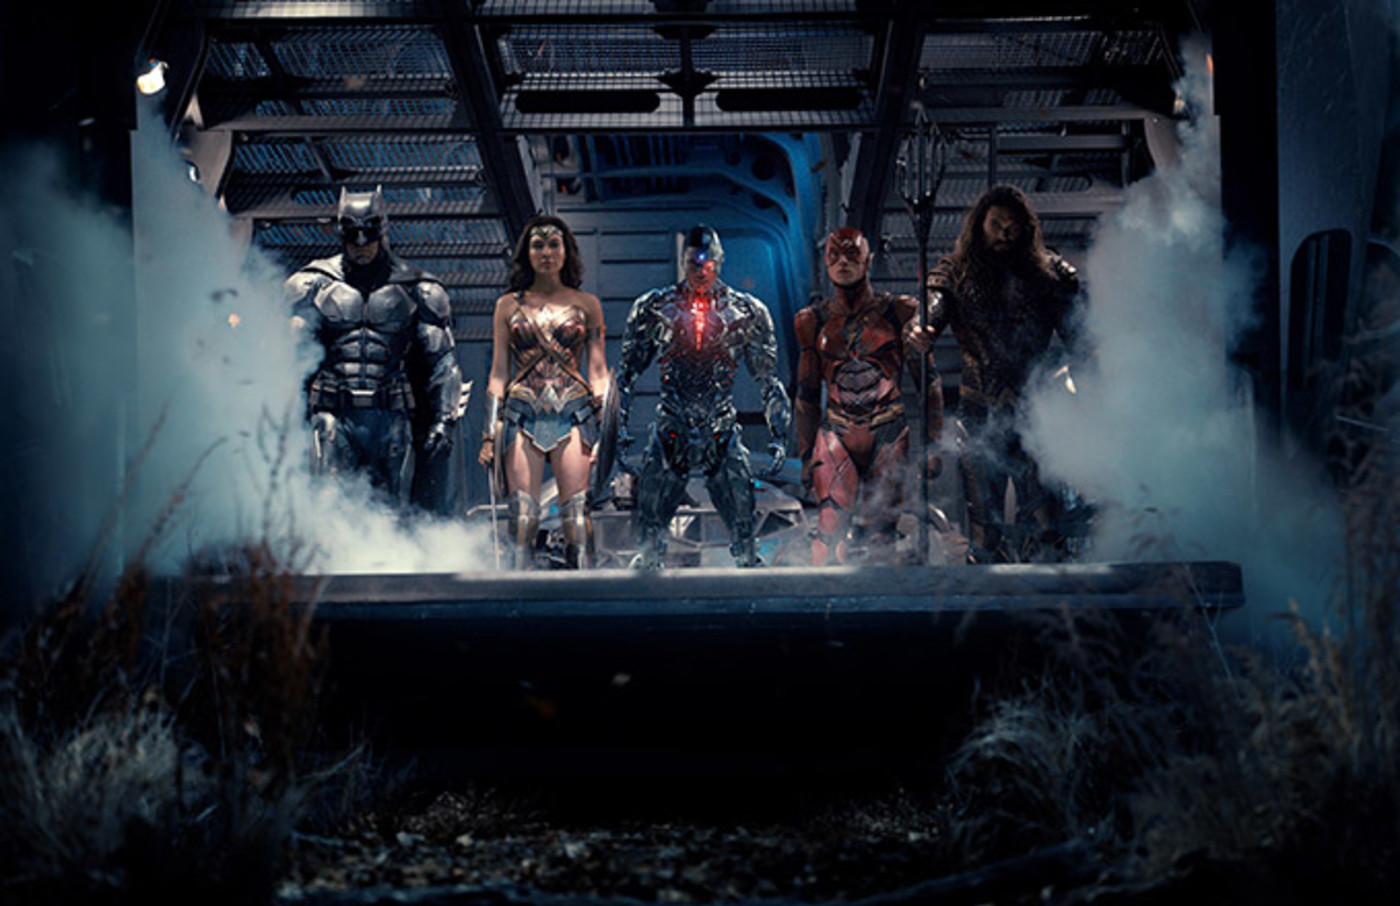 This is a photo of Justice League.